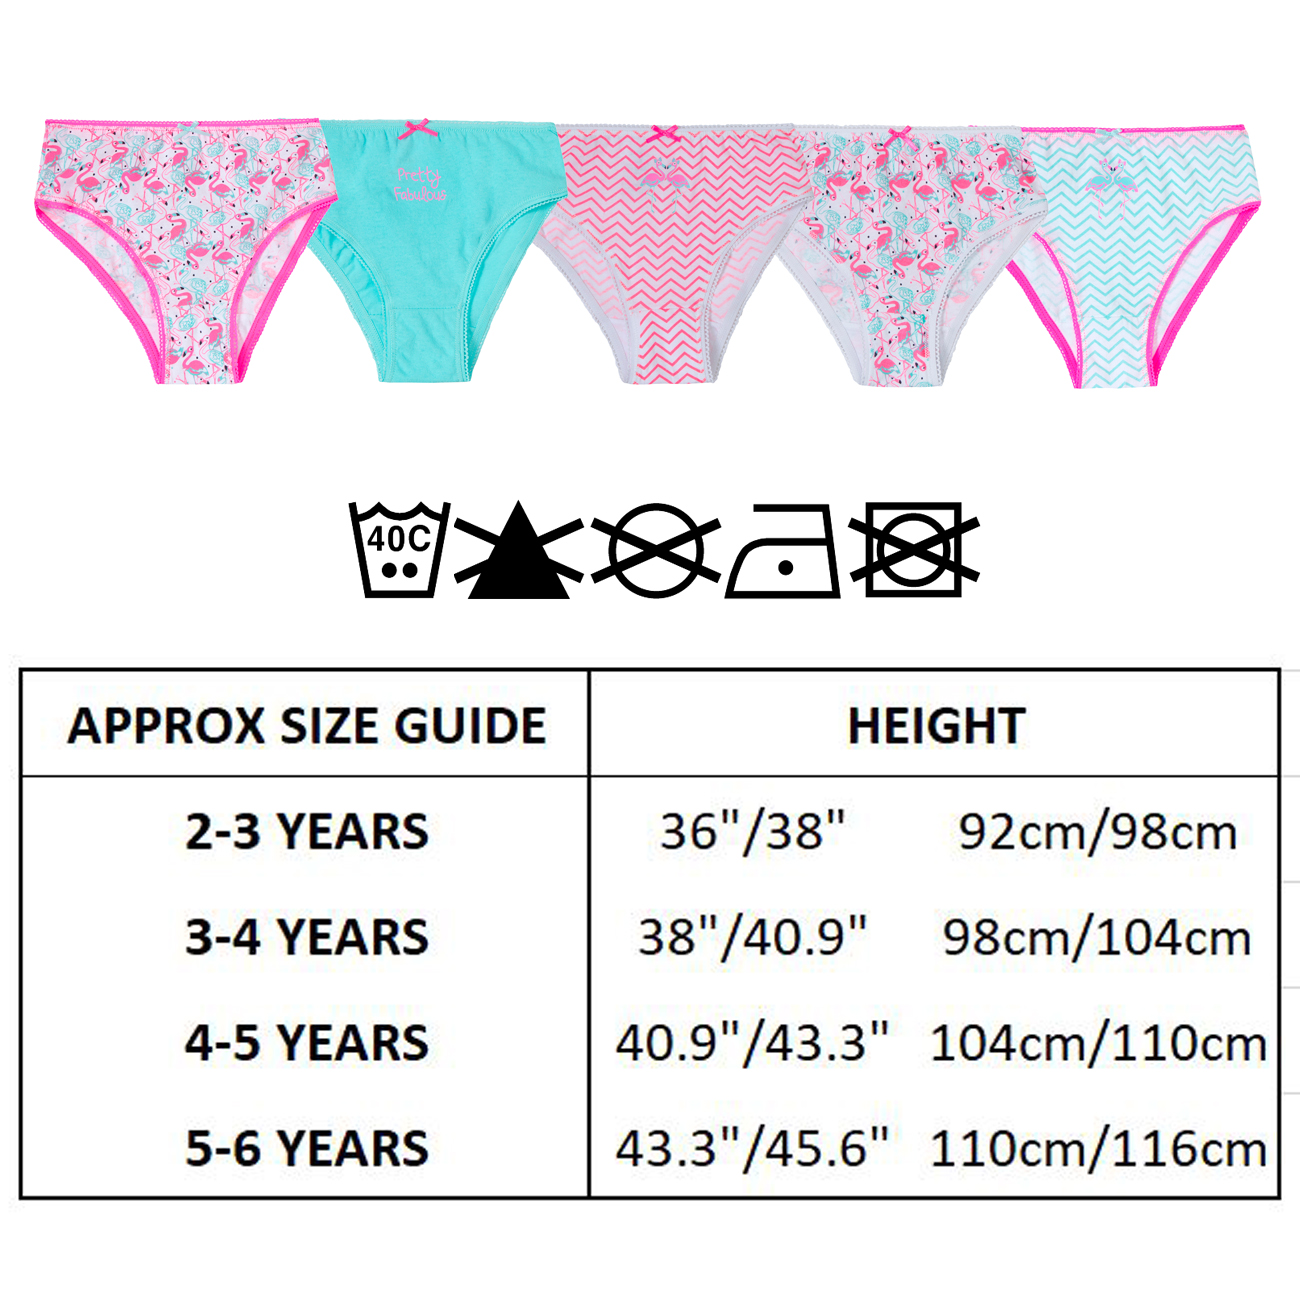 5-6 Years, Fruity Girls Five Pack Pants Briefs Knickers Underwear Three Styles 2-3 Up to 13 Years